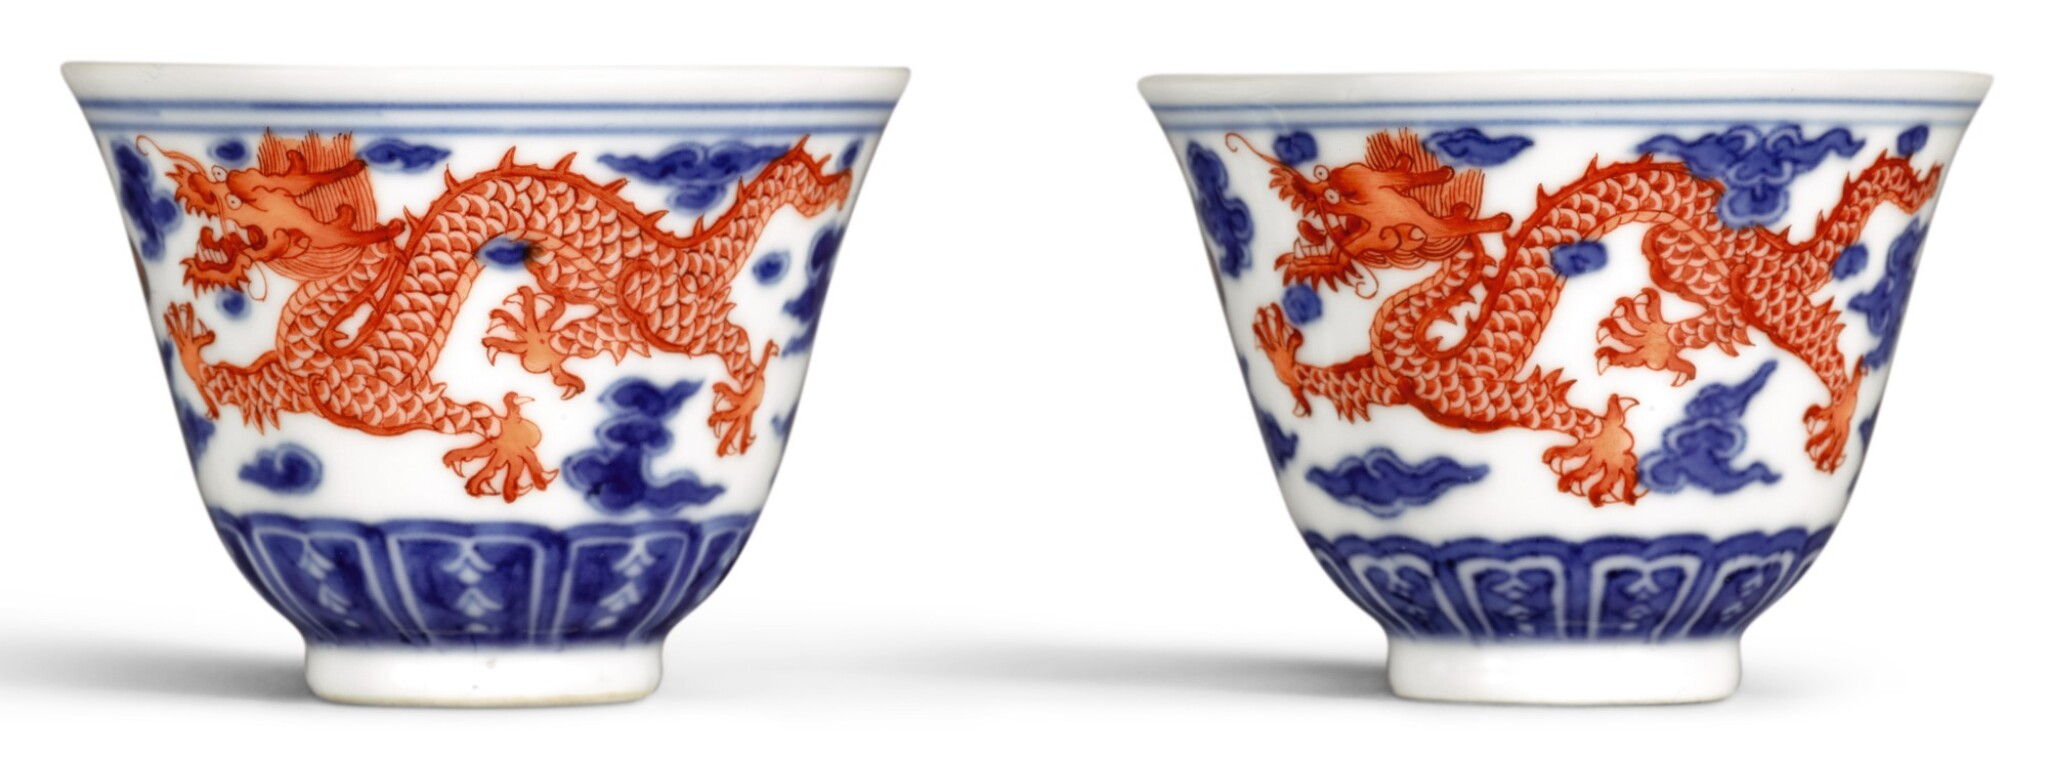 View 1 of Lot 336. A PAIR OF UNDERGLAZE-BLUE AND IRON-RED DECORATED 'DRAGON' CUPS LATE QING DYNASTY | 晚清 青花礬紅雲龍趕珠紋小盃一對.